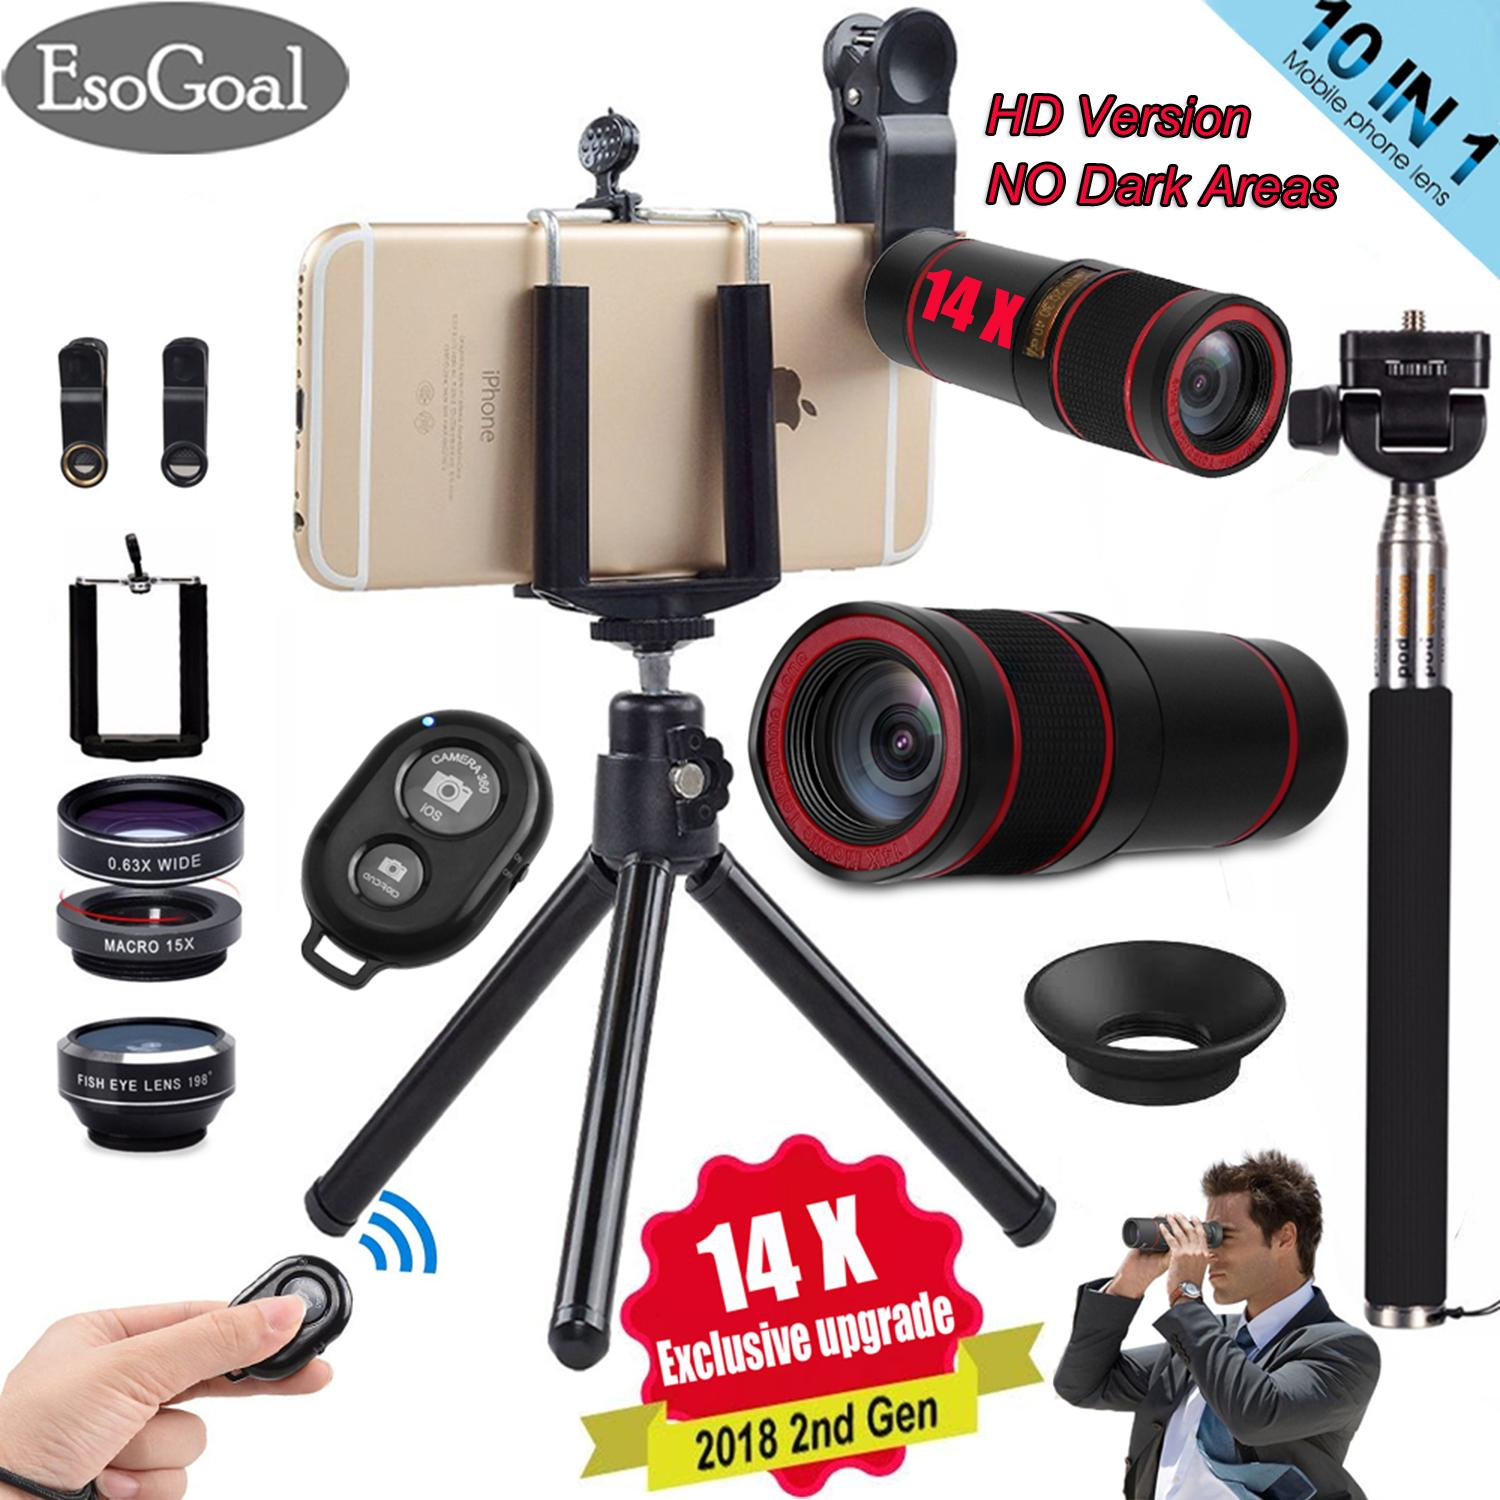 EsoGoal Updated 10 in 1 14x Zoom Telephoto Lens + Fisheye + Wide Angle + Macro Lens + Selfie Stick Monopod + Bluetooth   Remote Control + Mini Tripod with Phone Holder for Mobile Phones